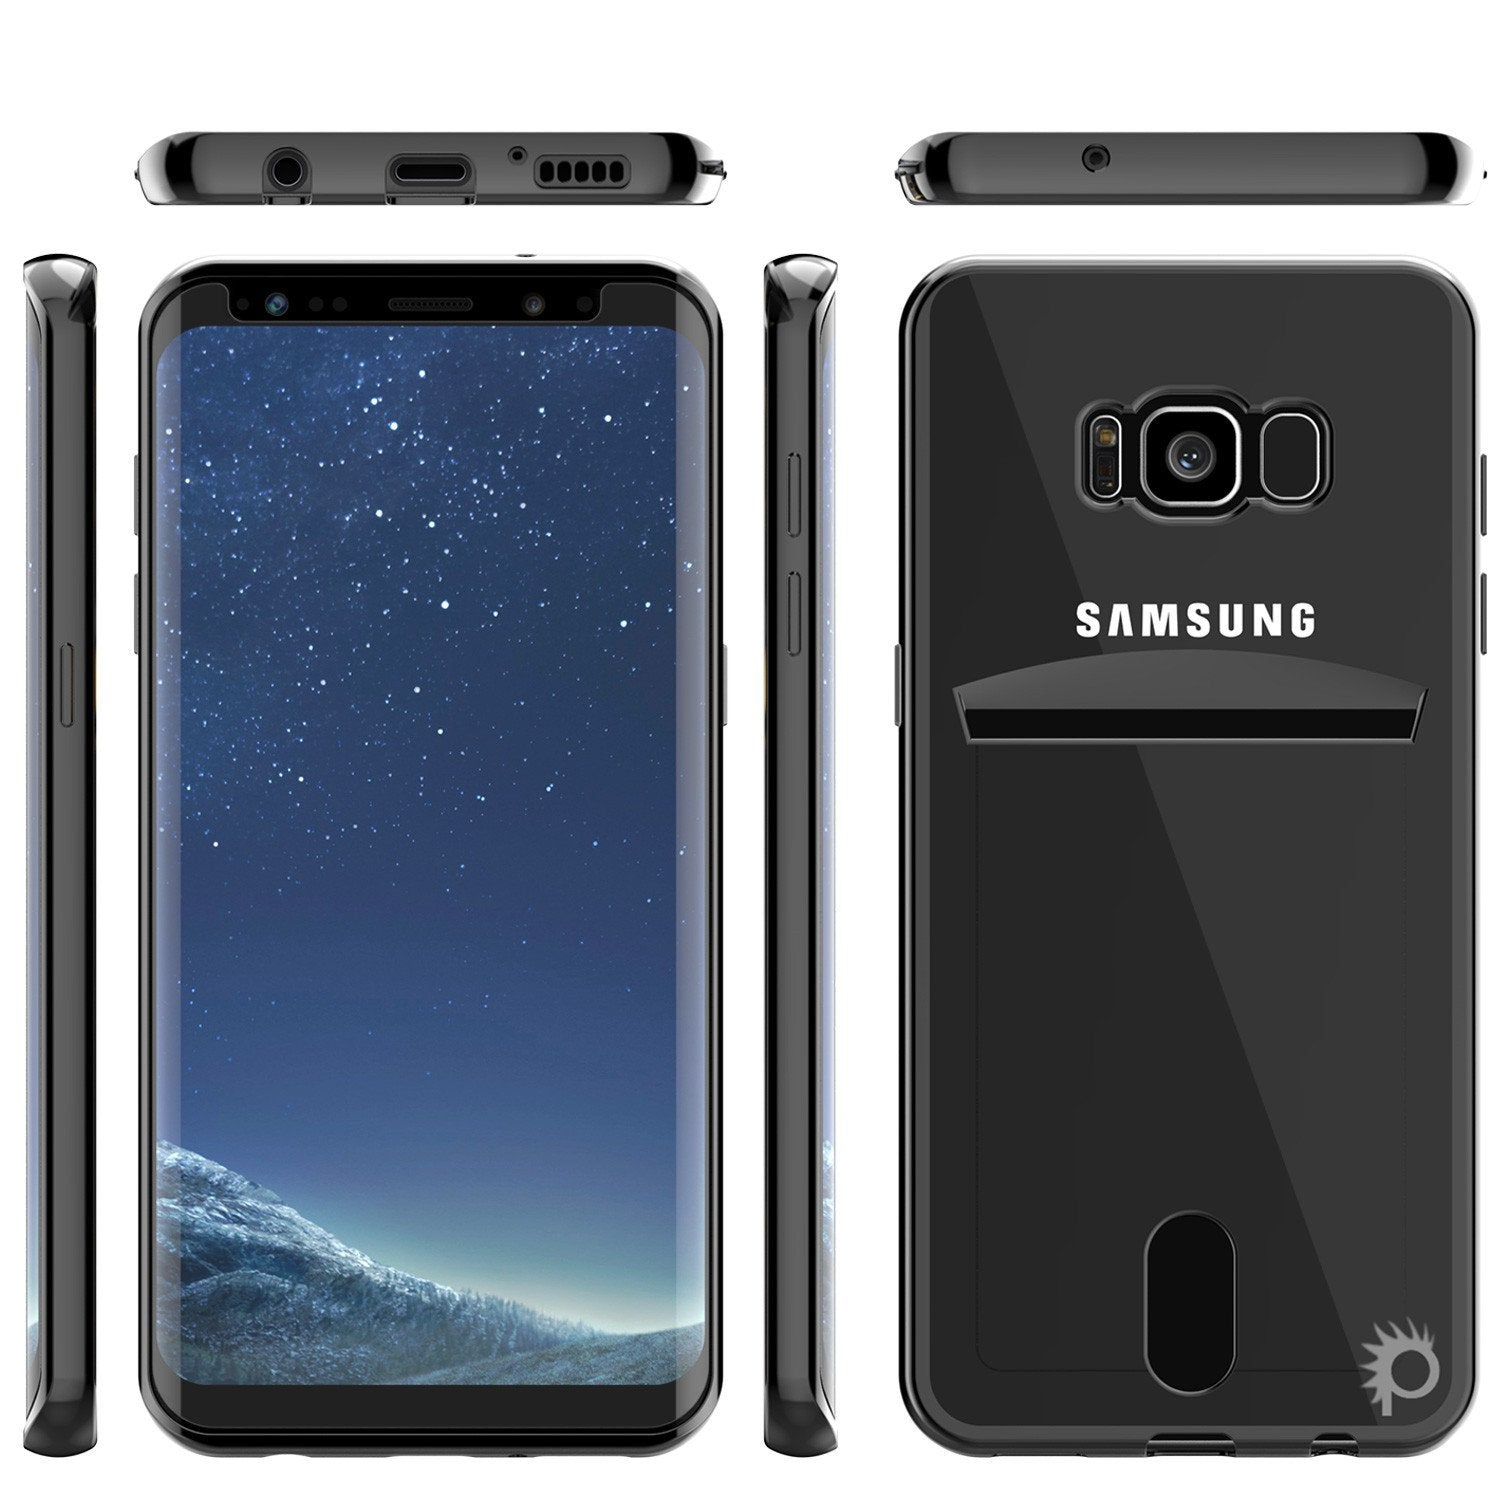 Galaxy S8 Case, PUNKCASE® LUCID Black Series | Card Slot | SHIELD Screen Protector | Ultra fit - PunkCase NZ